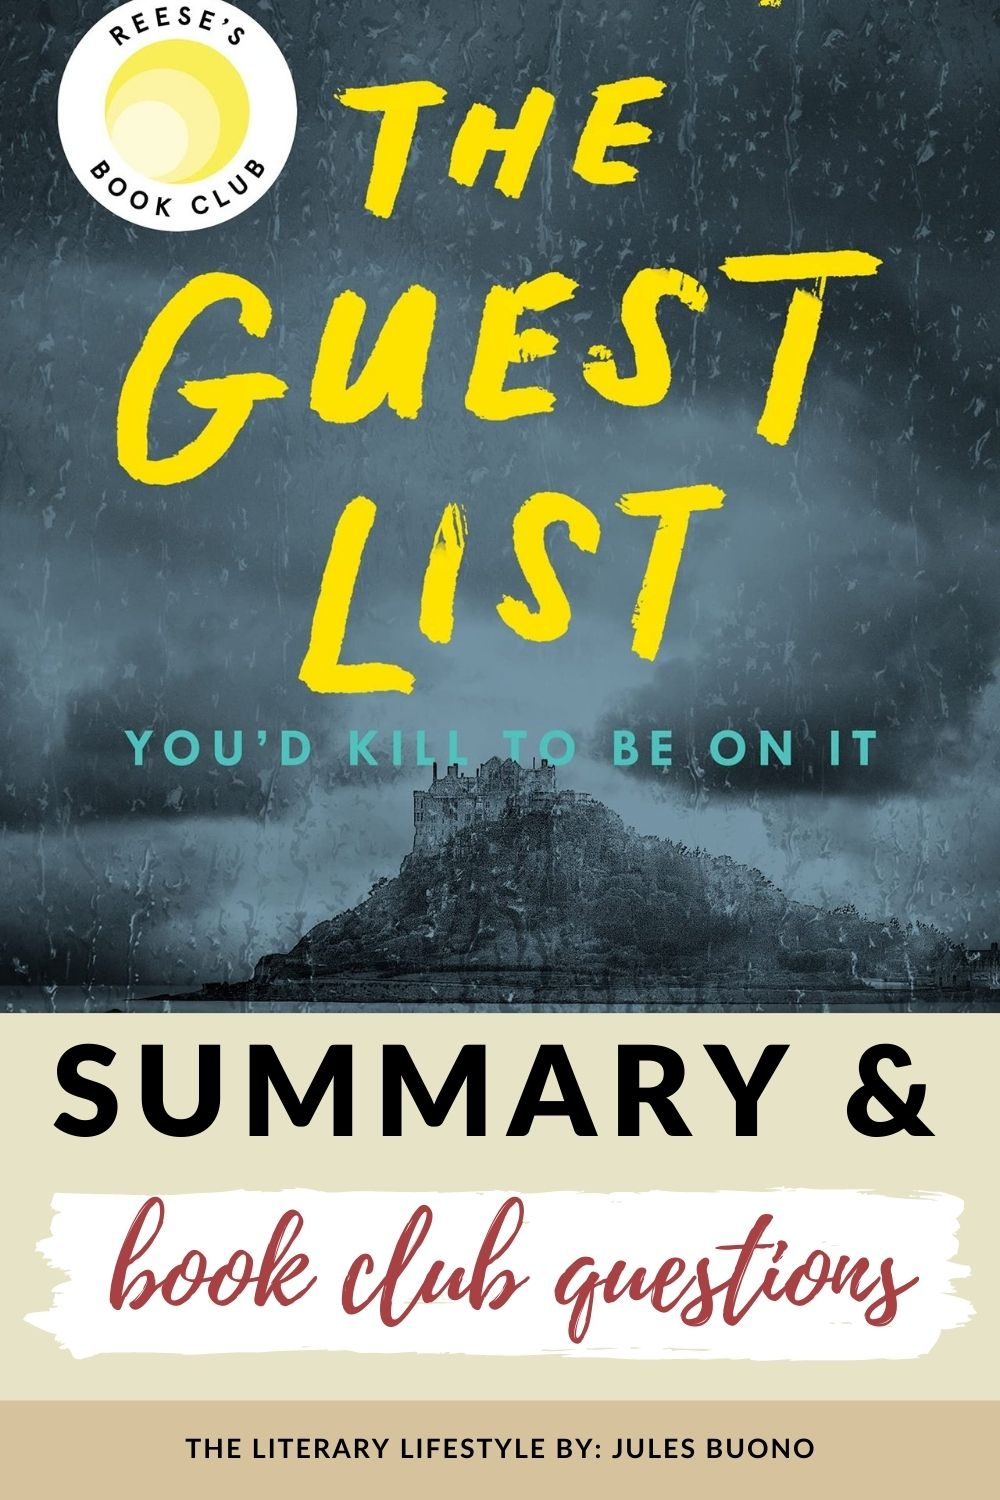 The Guest List book club questions and summary